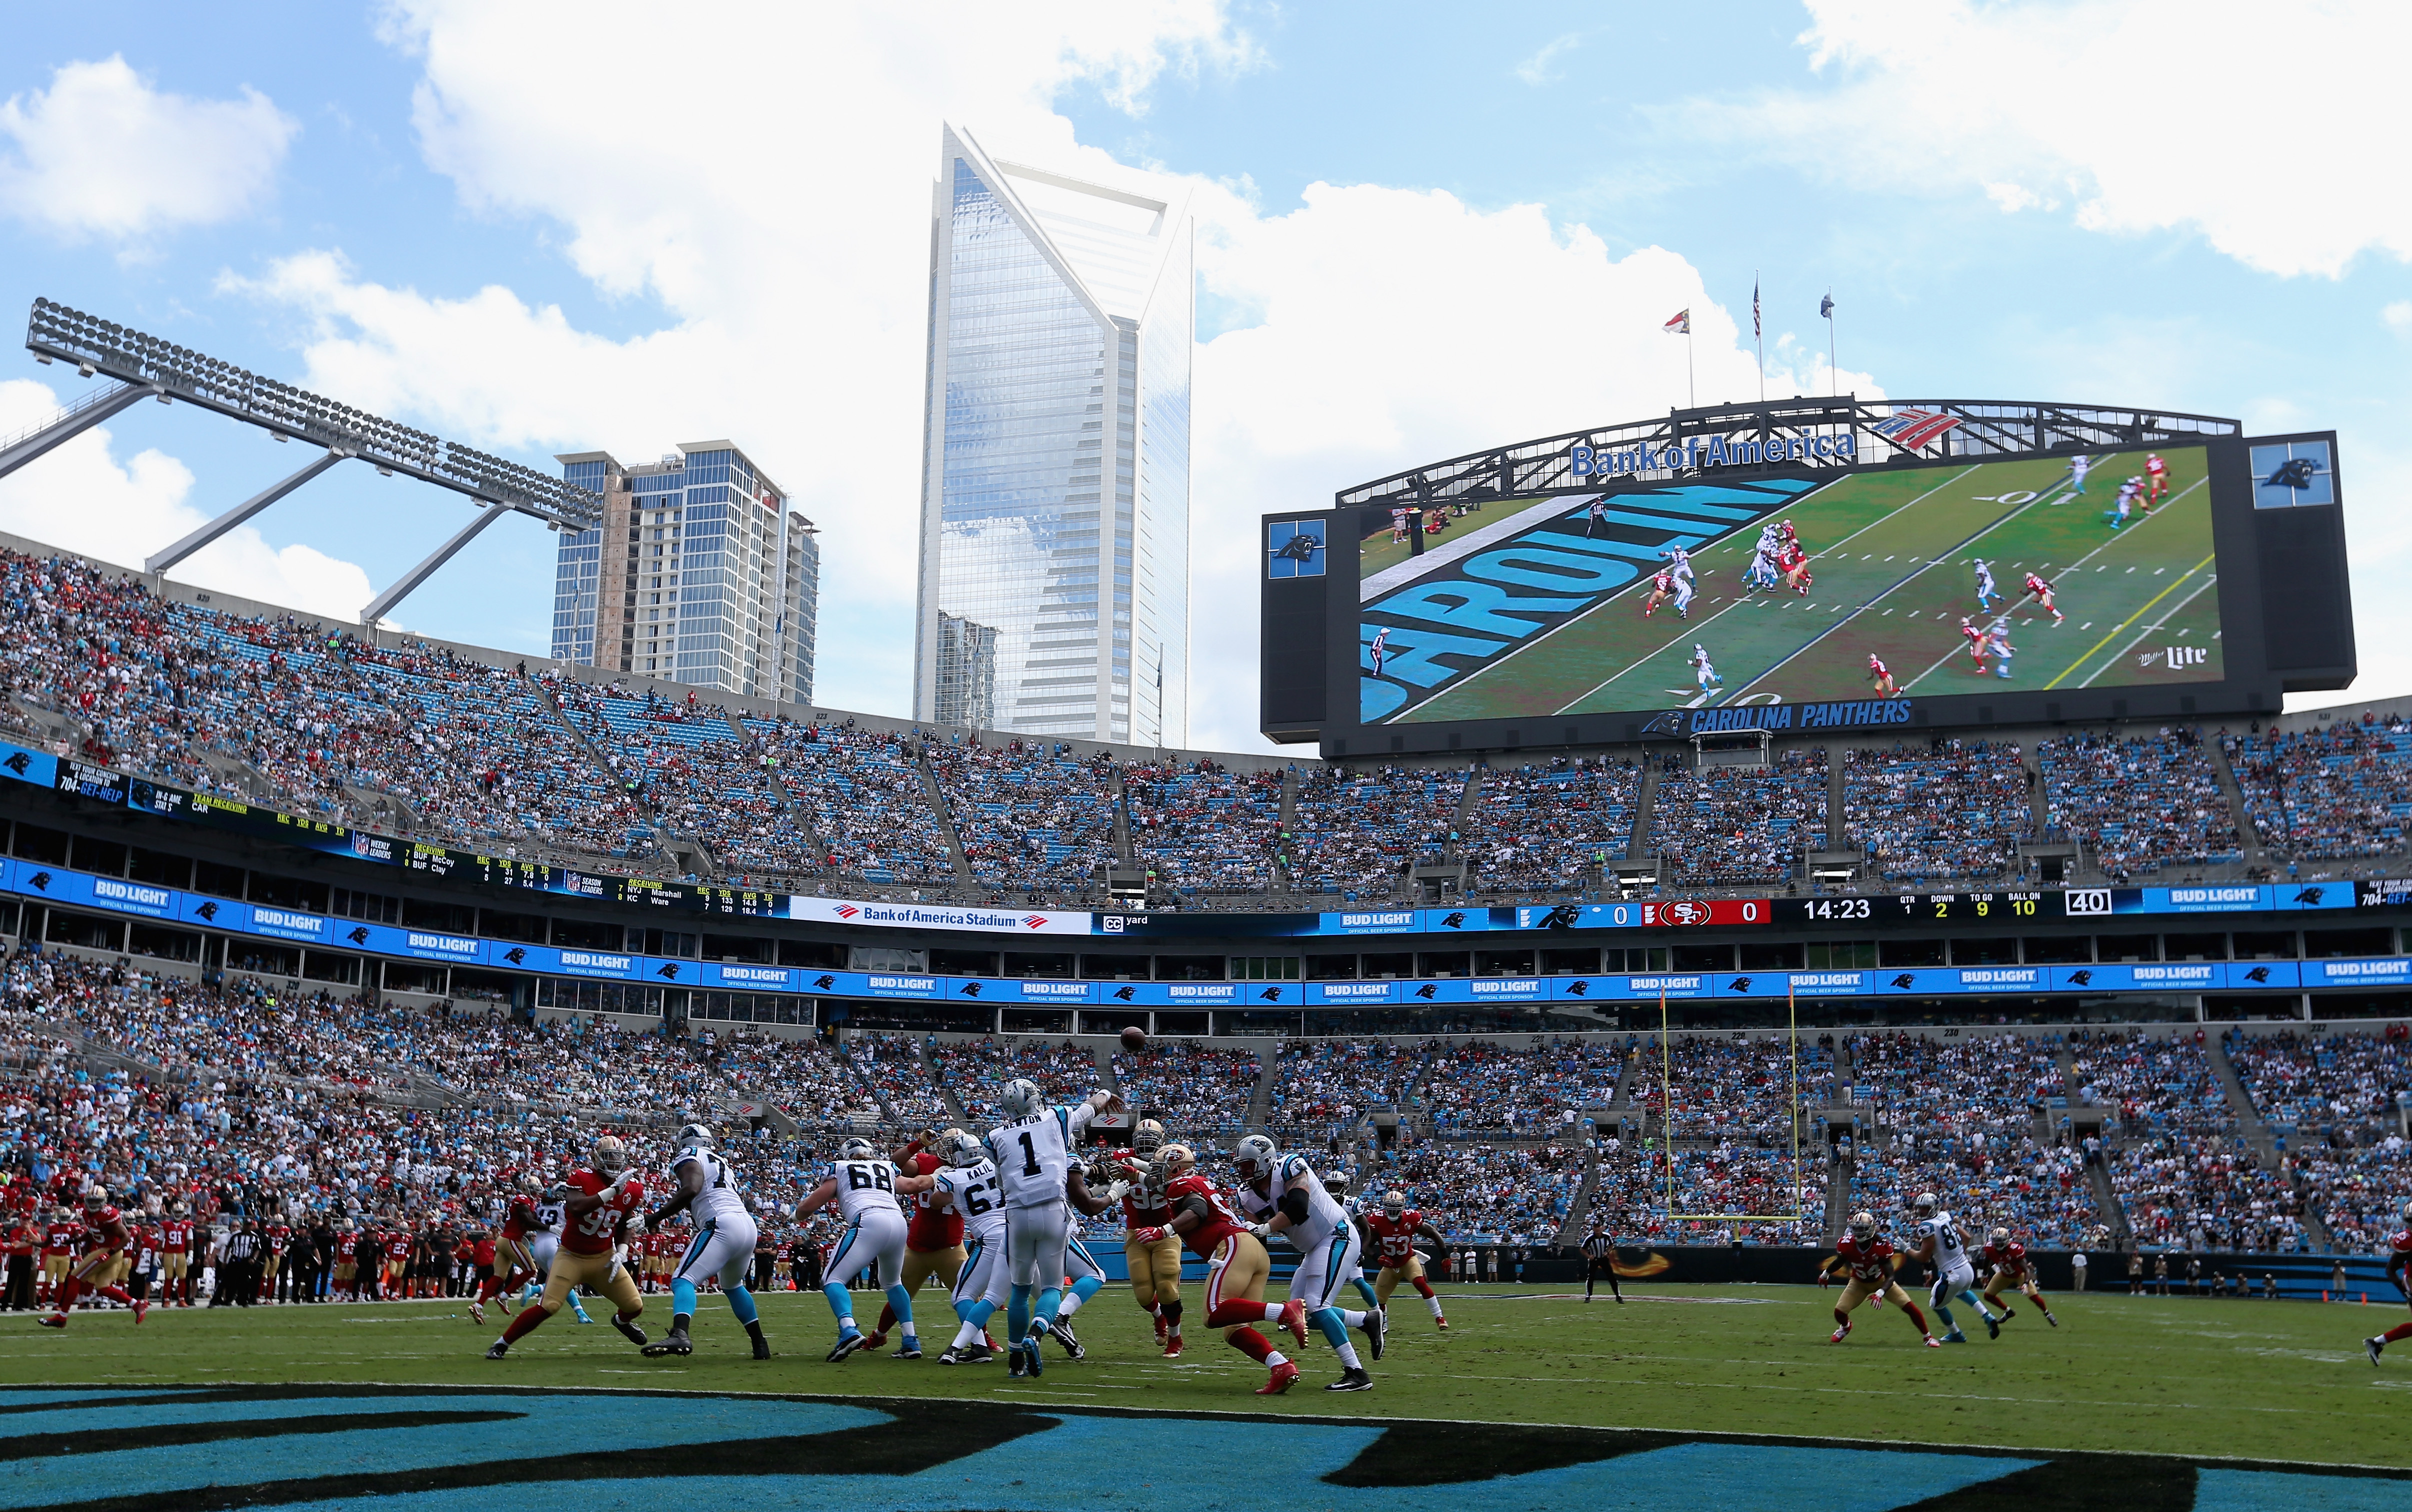 CHARLOTTE, NC - SEPTEMBER 18:   Cam Newton #1 of the Carolina Panthers throws an interception on their first possession against the San Francisco 49ers during their game at Bank of America Stadium on September 18, 2016 in Charlotte, North Carolina.  (Photo by Streeter Lecka/Getty Images)